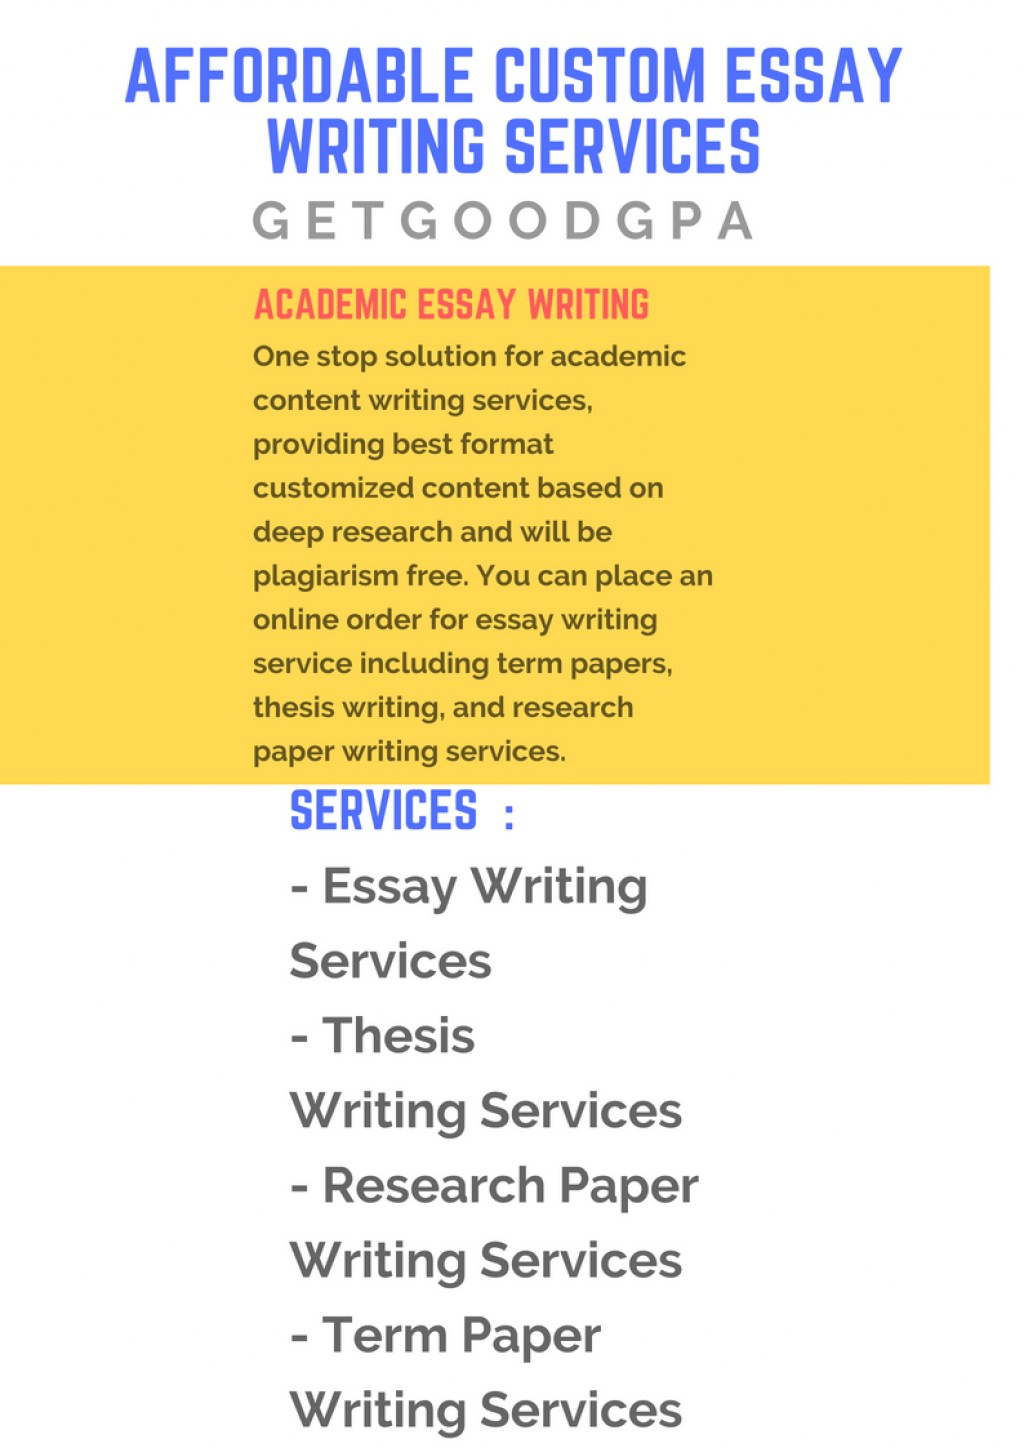 002 1p24u5izogrgxlkfzqmxvgq Research Paper Writing Dreaded Service Services In India Best Academic Online Large